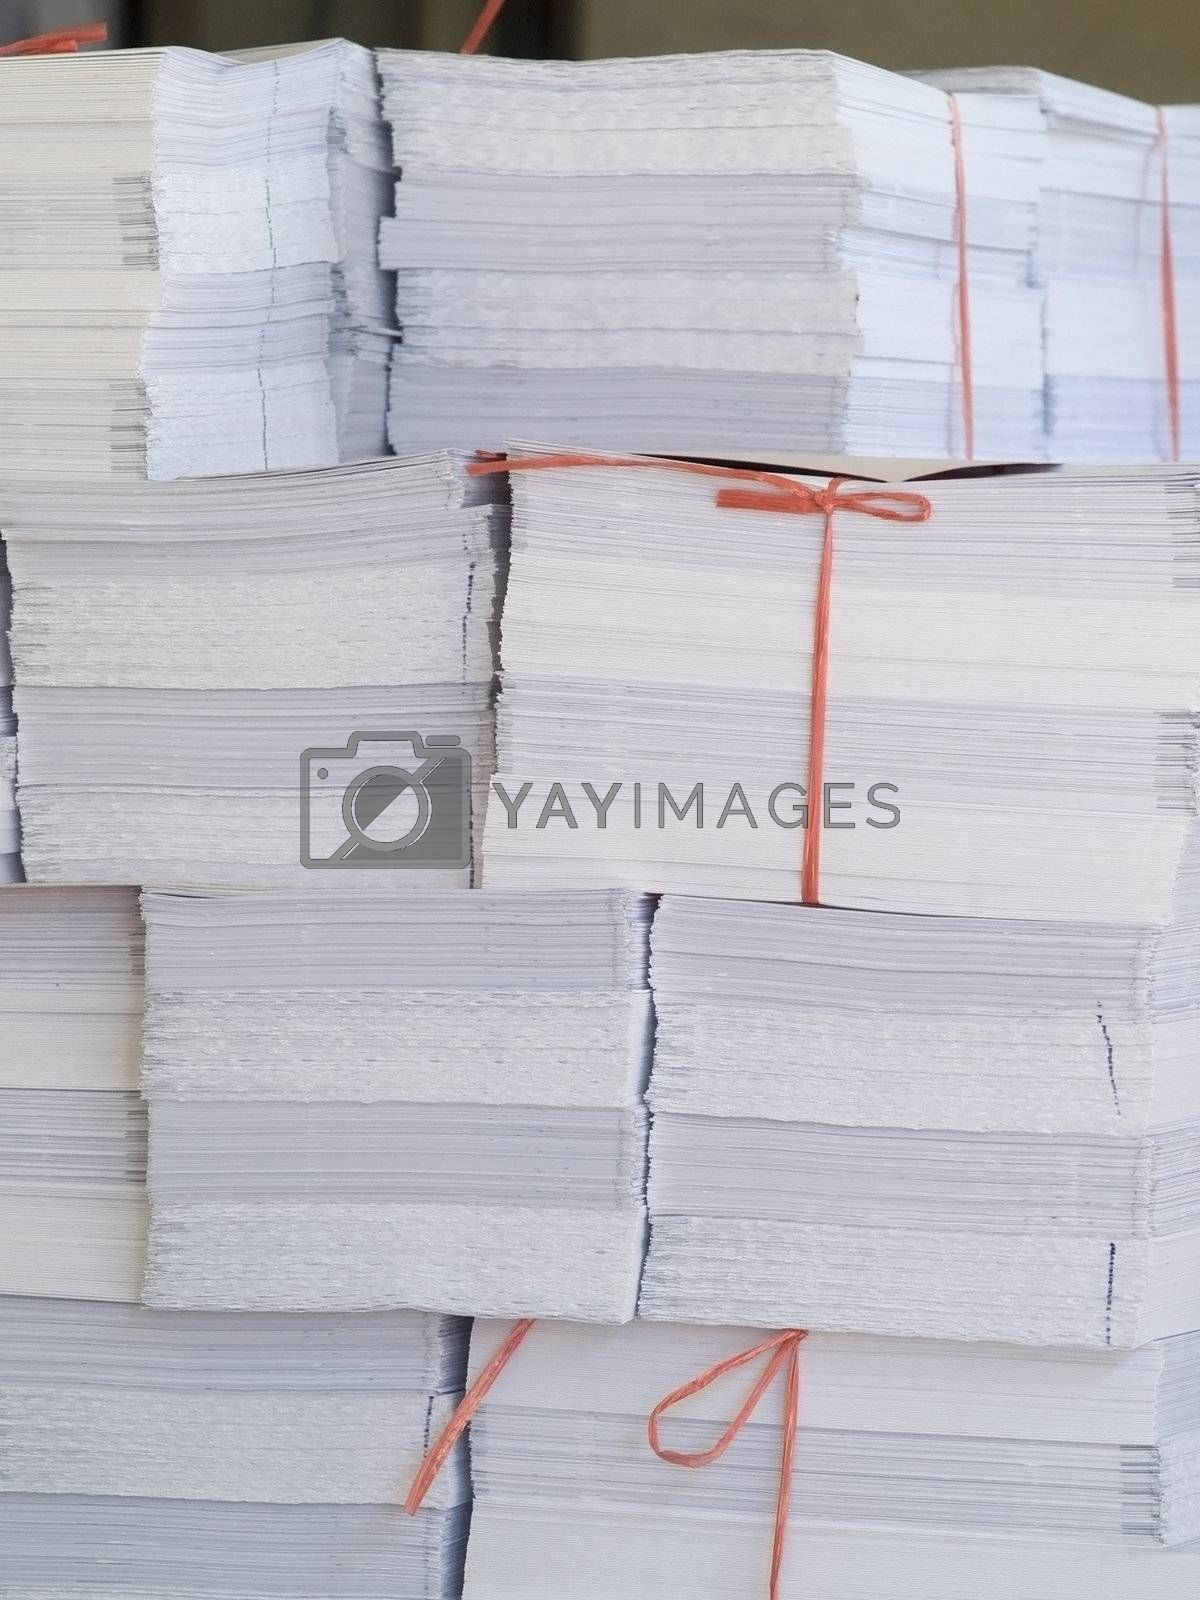 Piles of paper by epixx